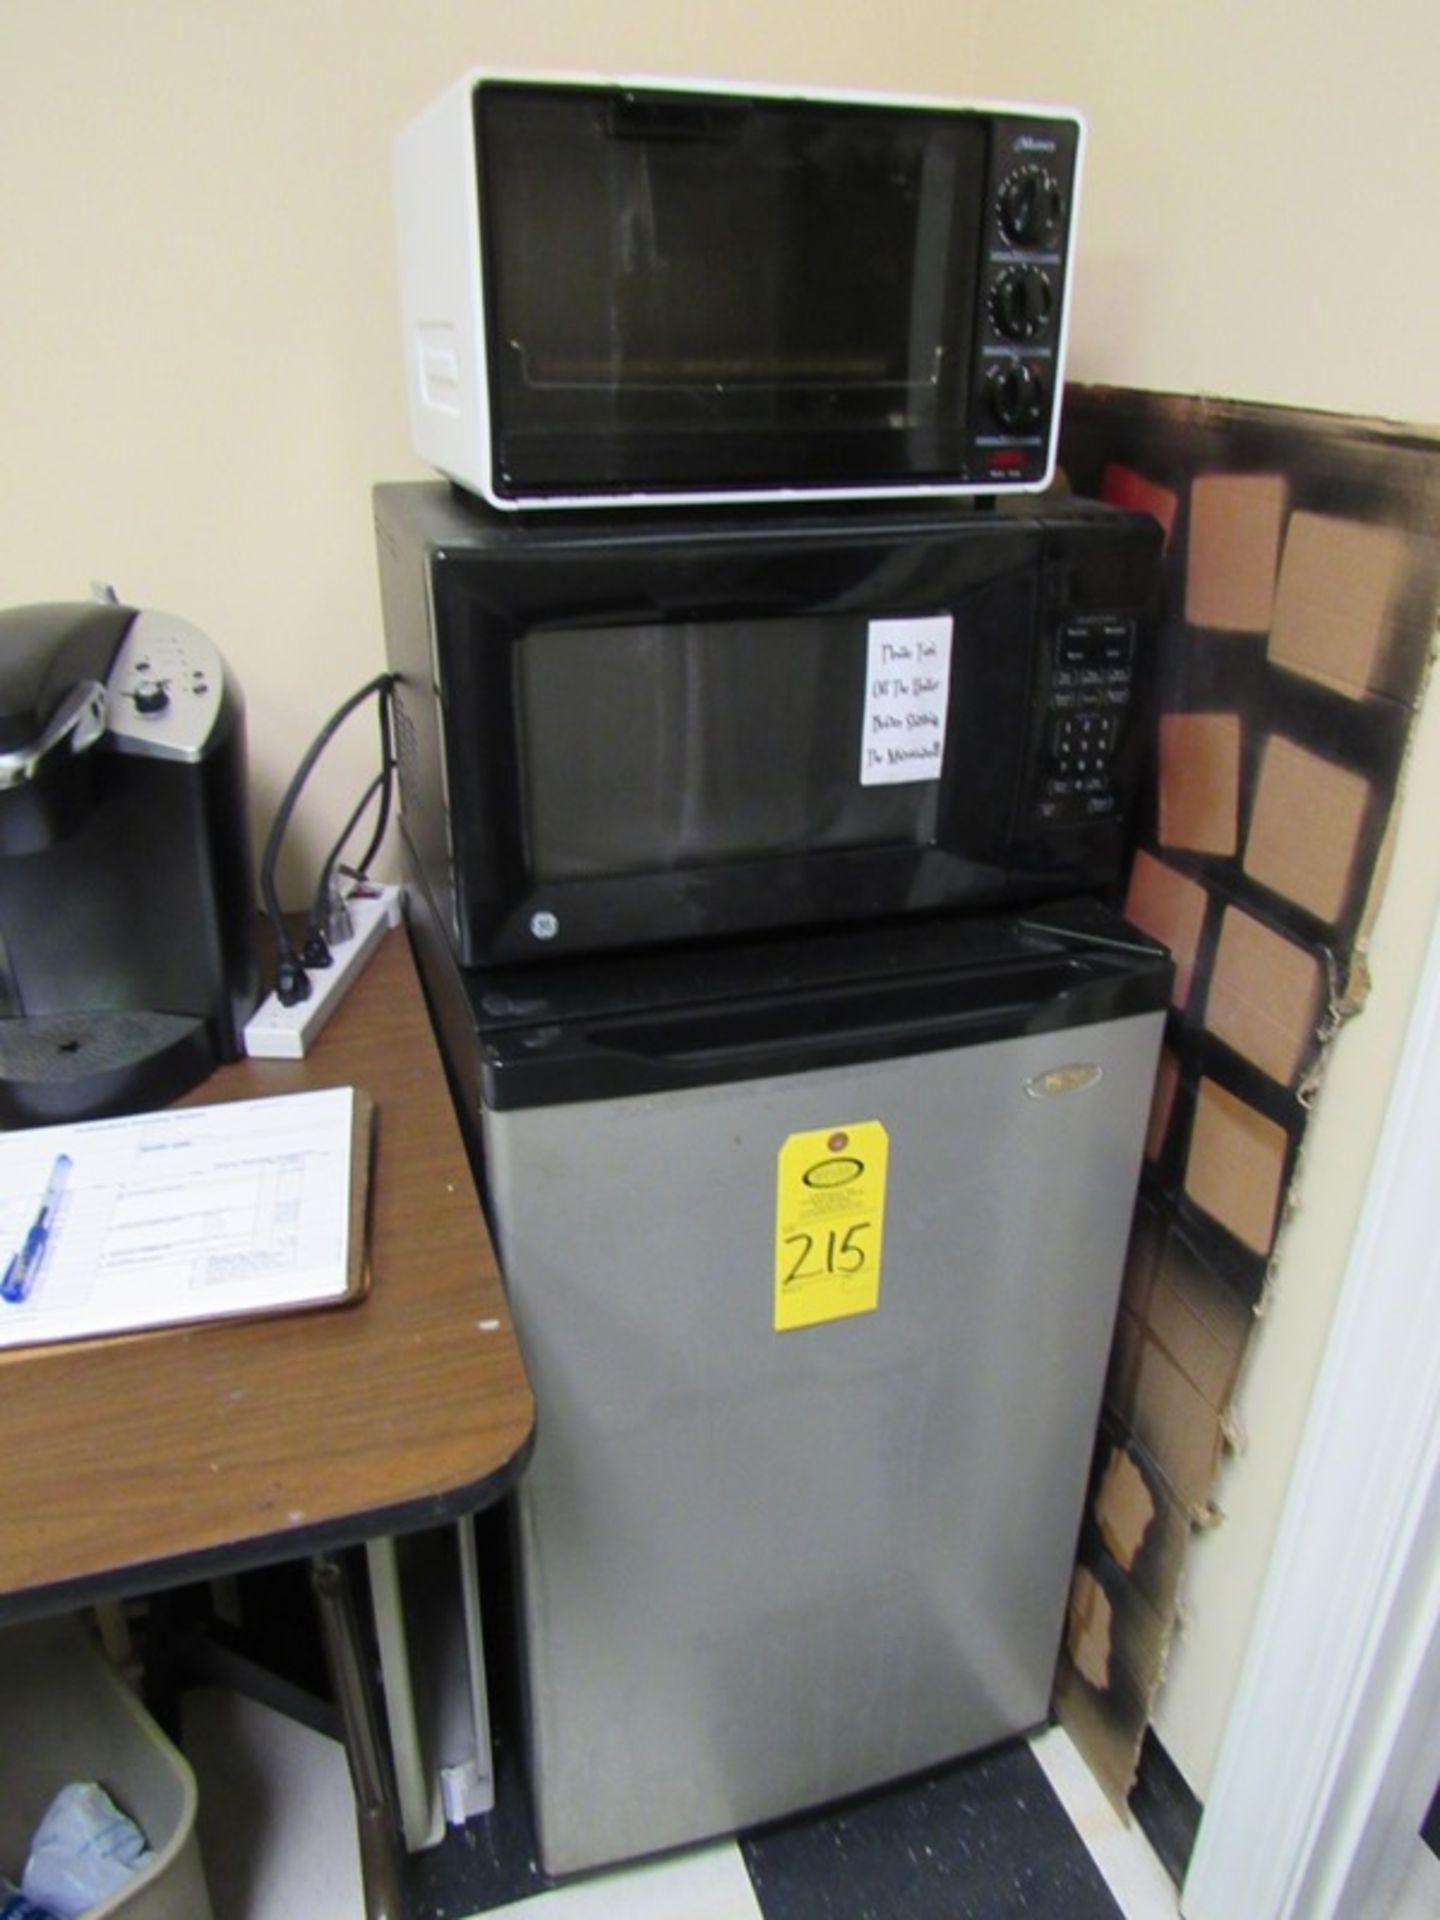 Lot 215 - Lot of Haier Mini Fridge , G.E. Microwave, Muncey Toaster Oven (All Funds Must Be Received by August